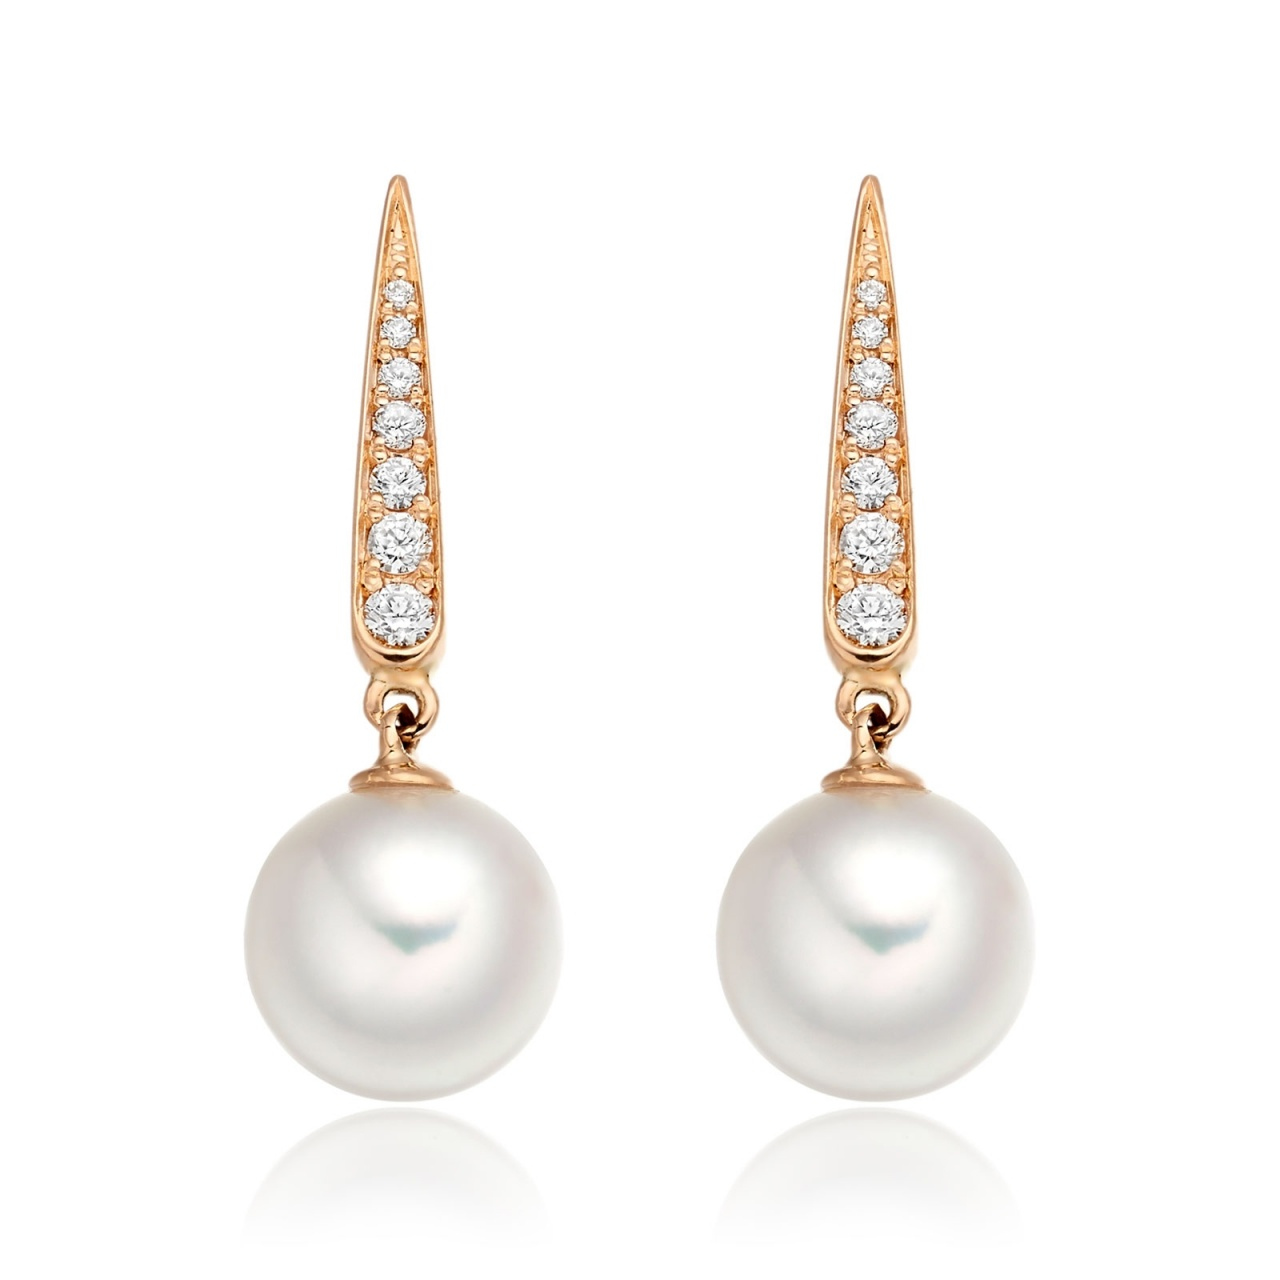 Mythologie Dewdrop Akoya Pearl Earrings in Rose Gold-AEWRRG1215-1